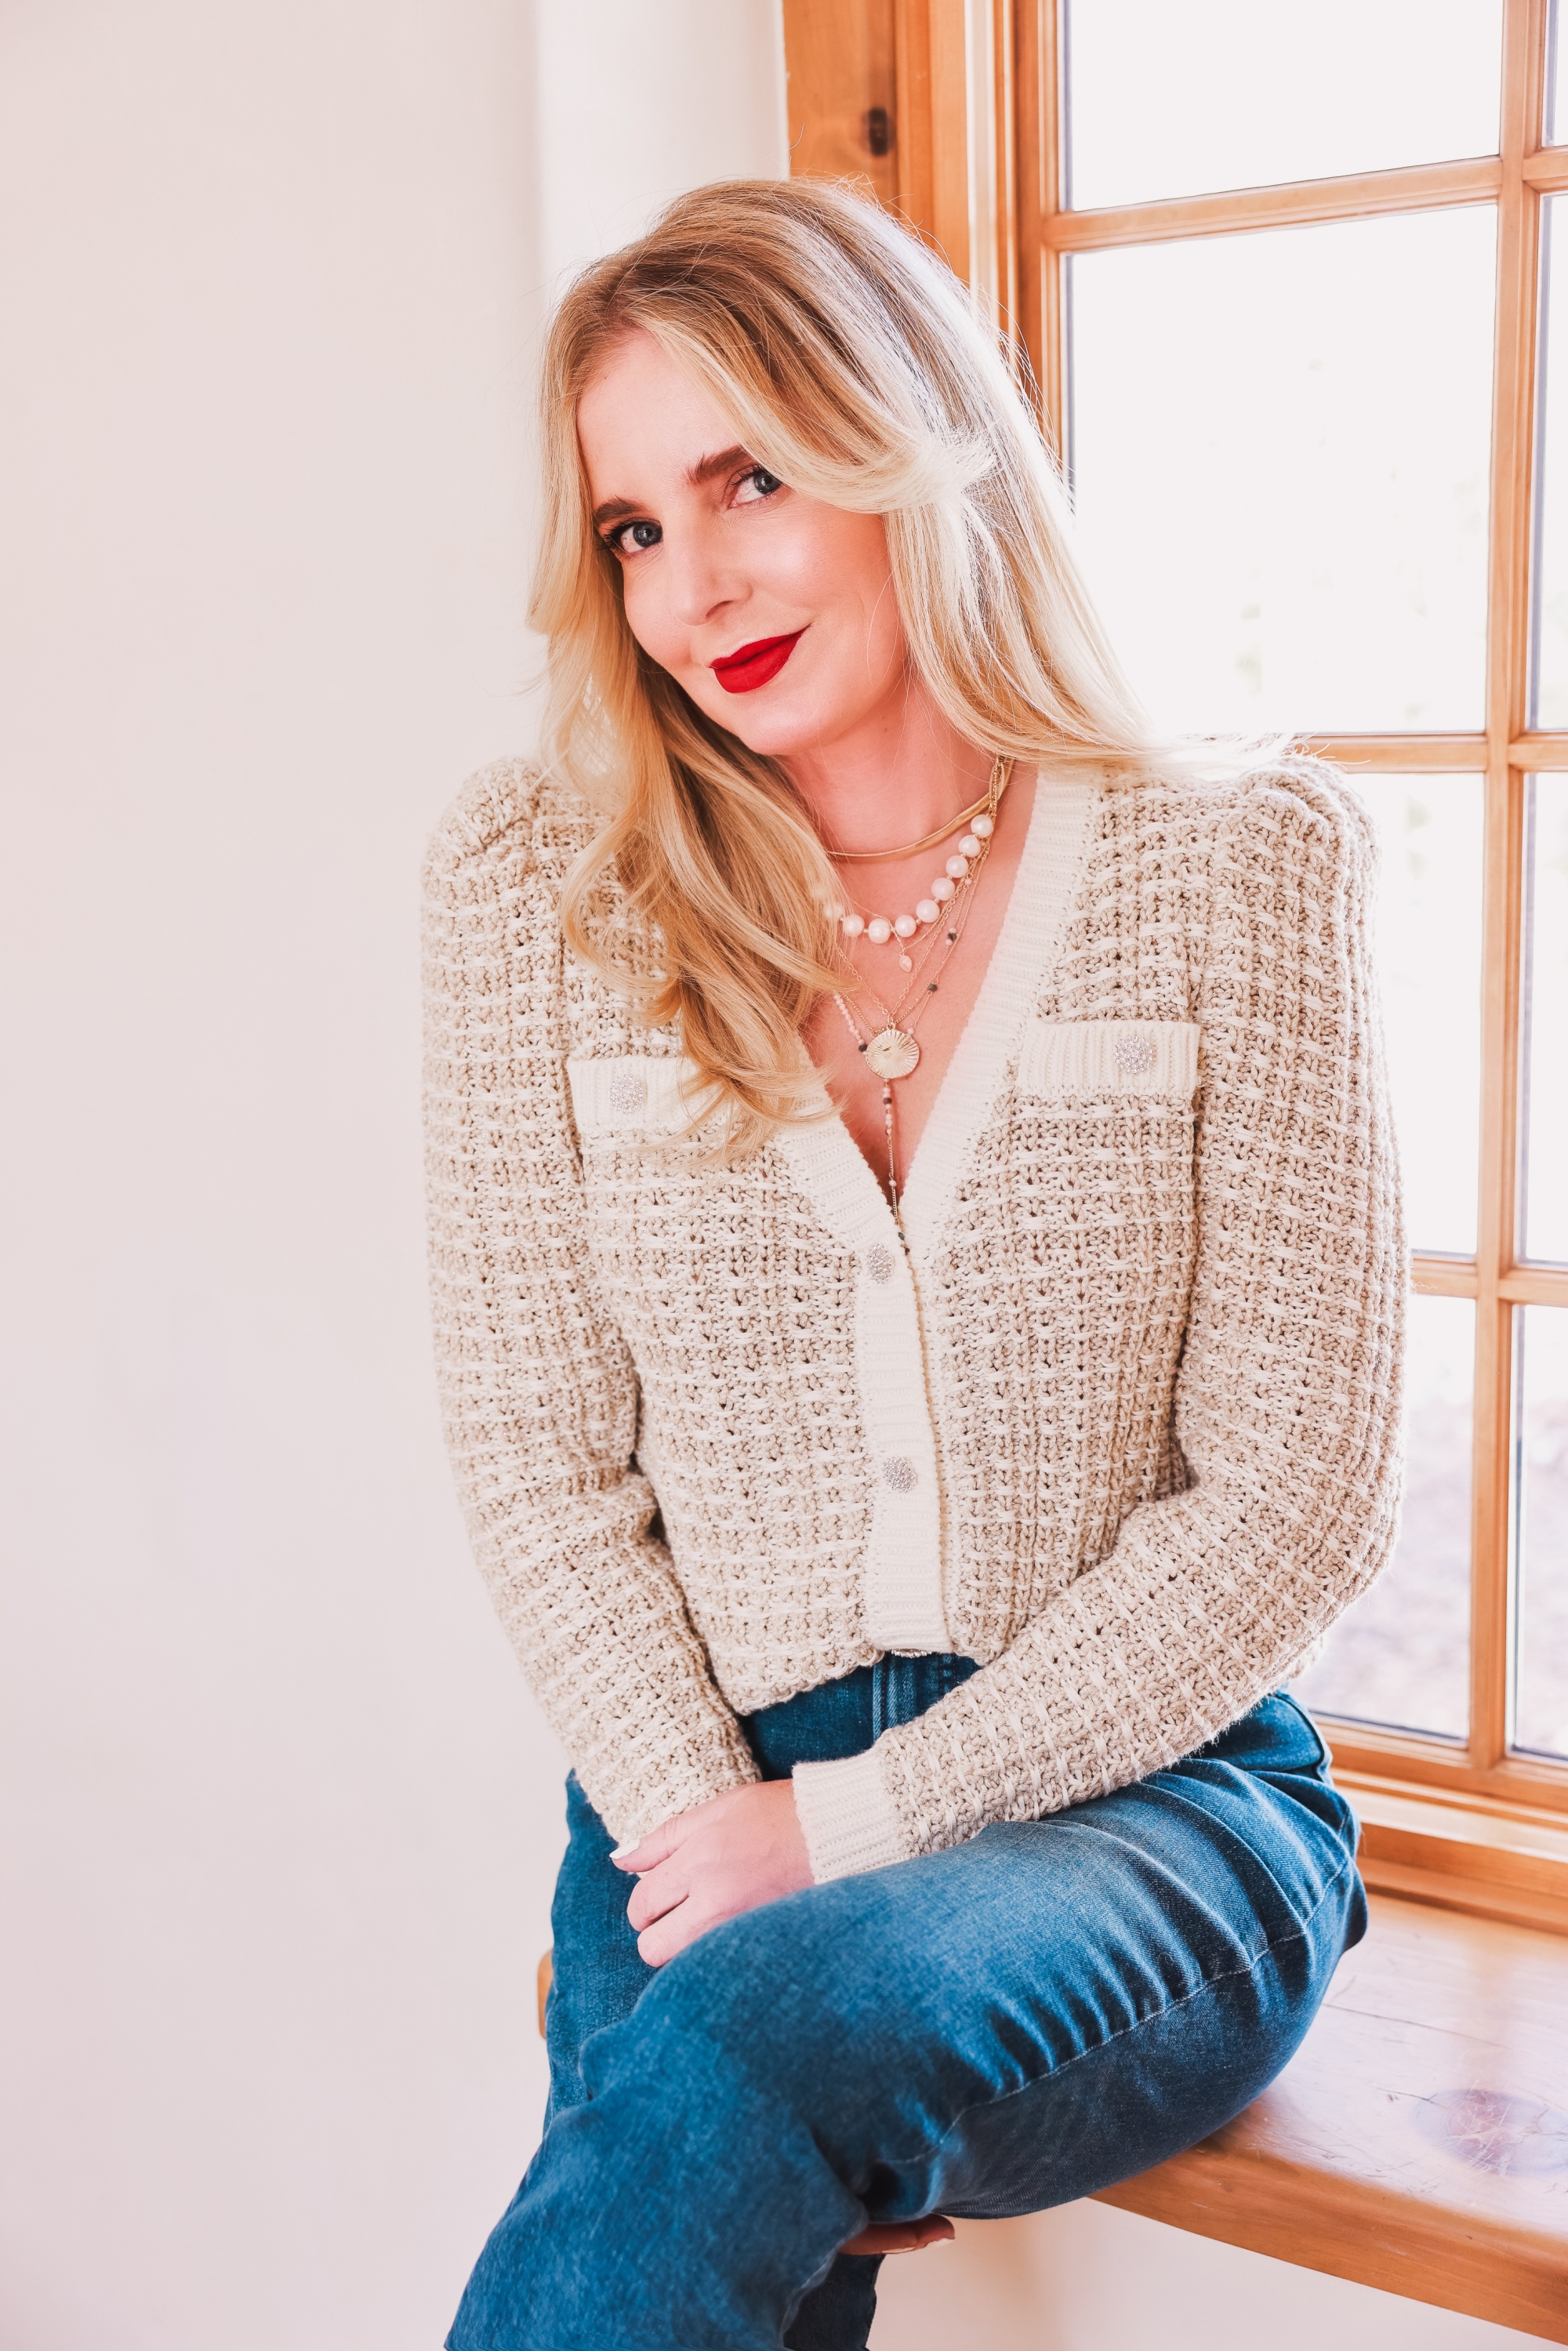 Chanel look on a budget, express woven sweater, express layered gold and pearl necklaces, layered jewelry, layered necklaces, express jeans, white sandals, white braided sandals, erin busbee